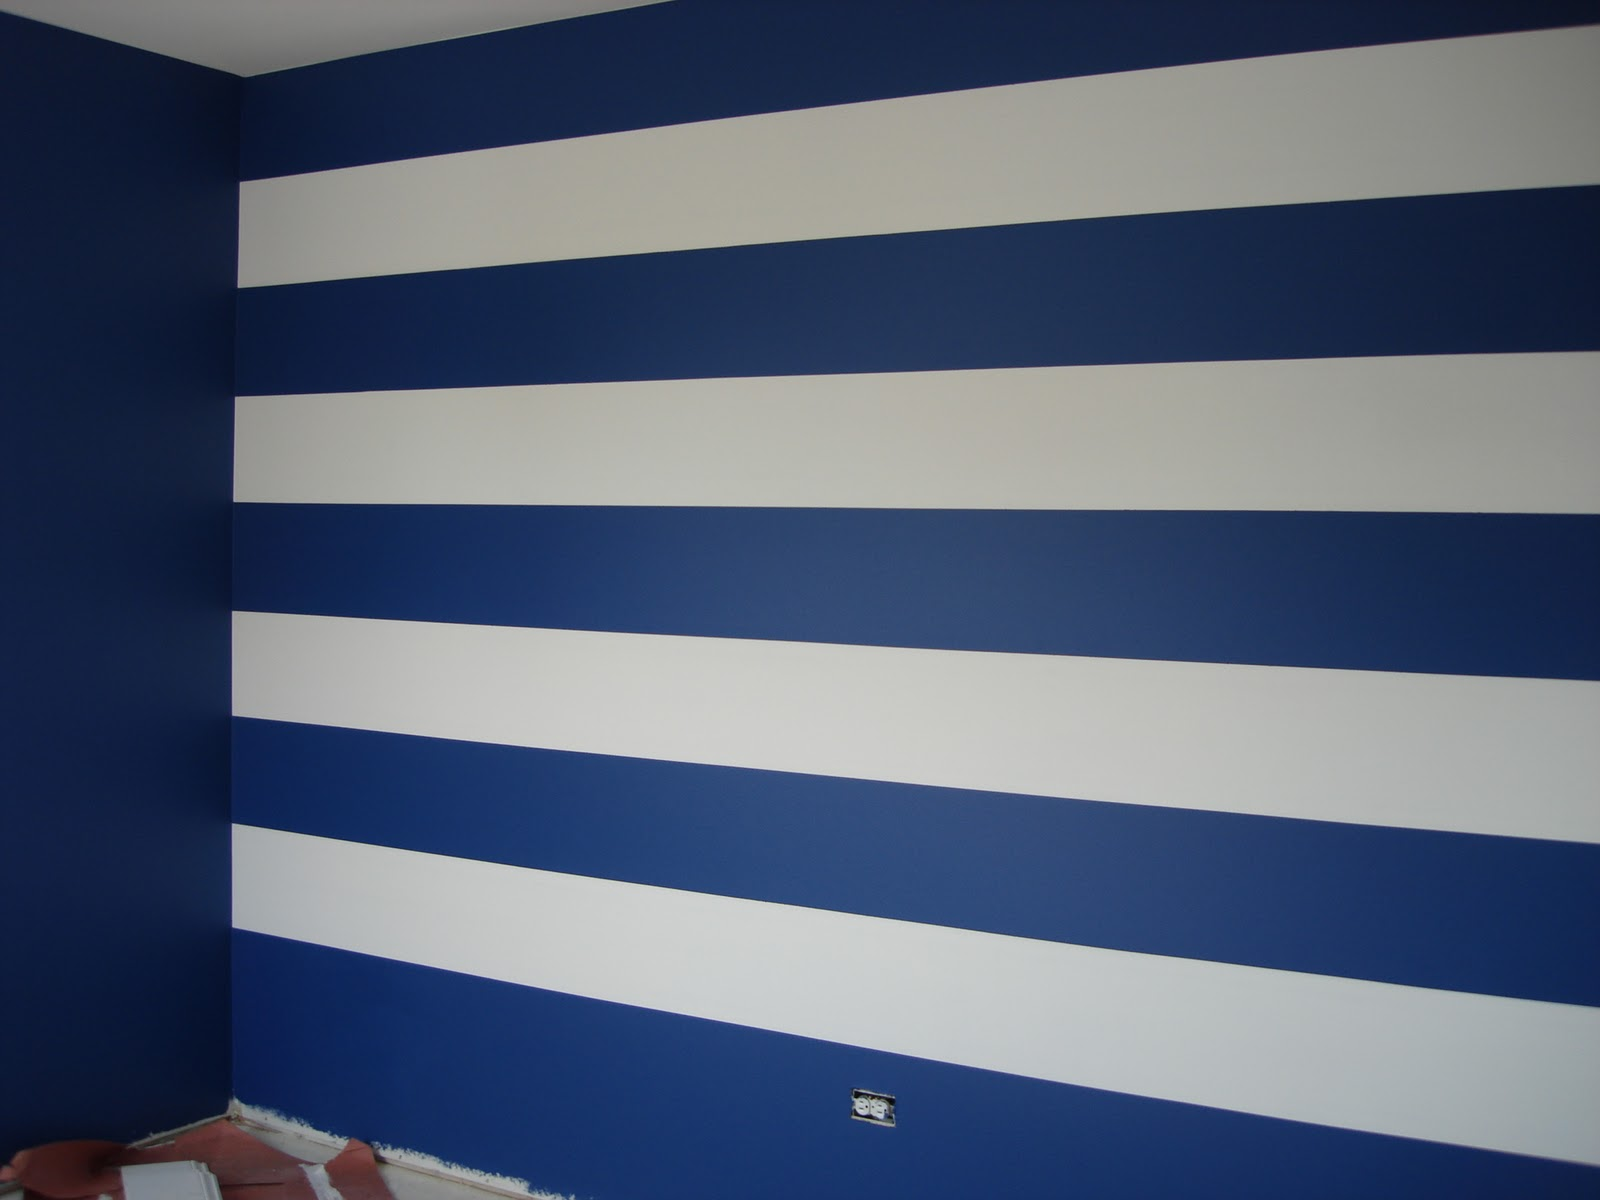 DG Style Striped Wall